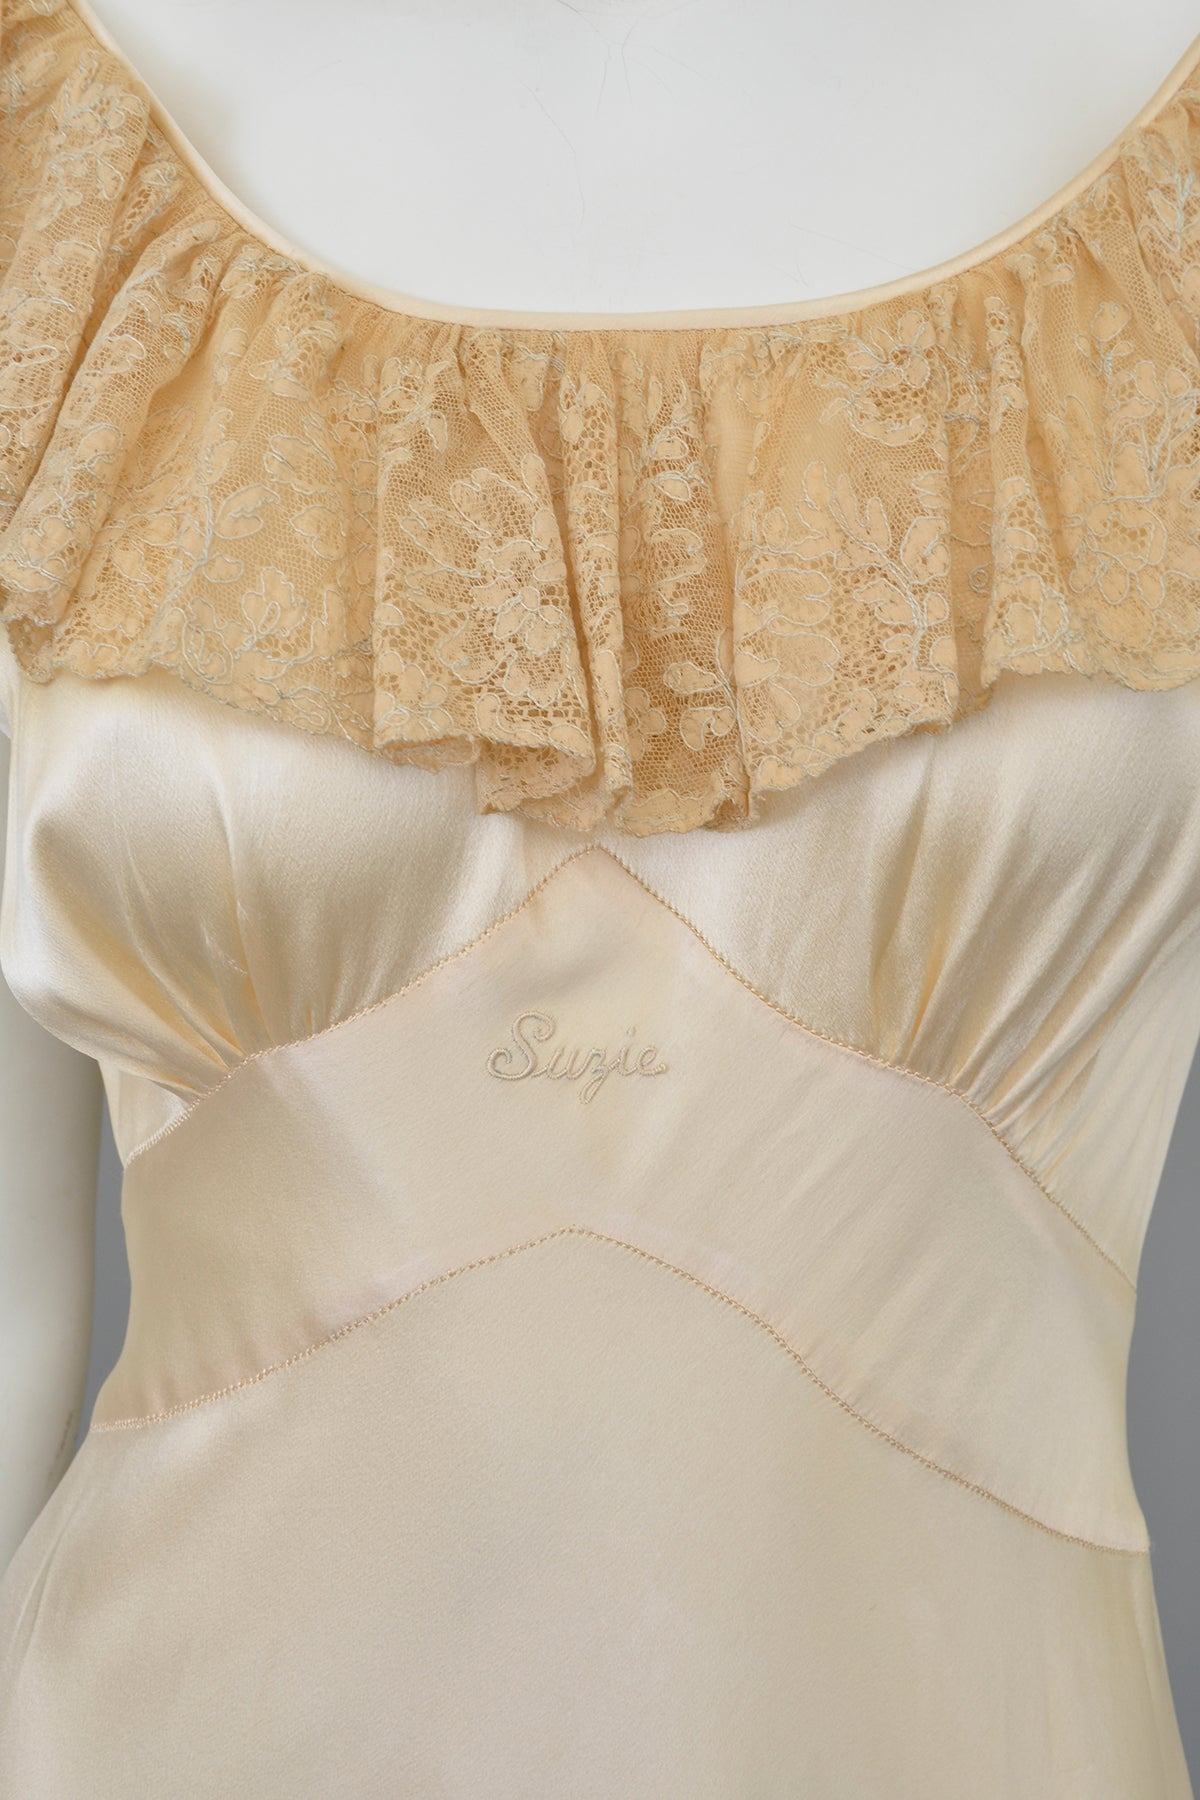 1930s Silk Satin Lace Flounce Negligee Gown Slip Suzie Dress